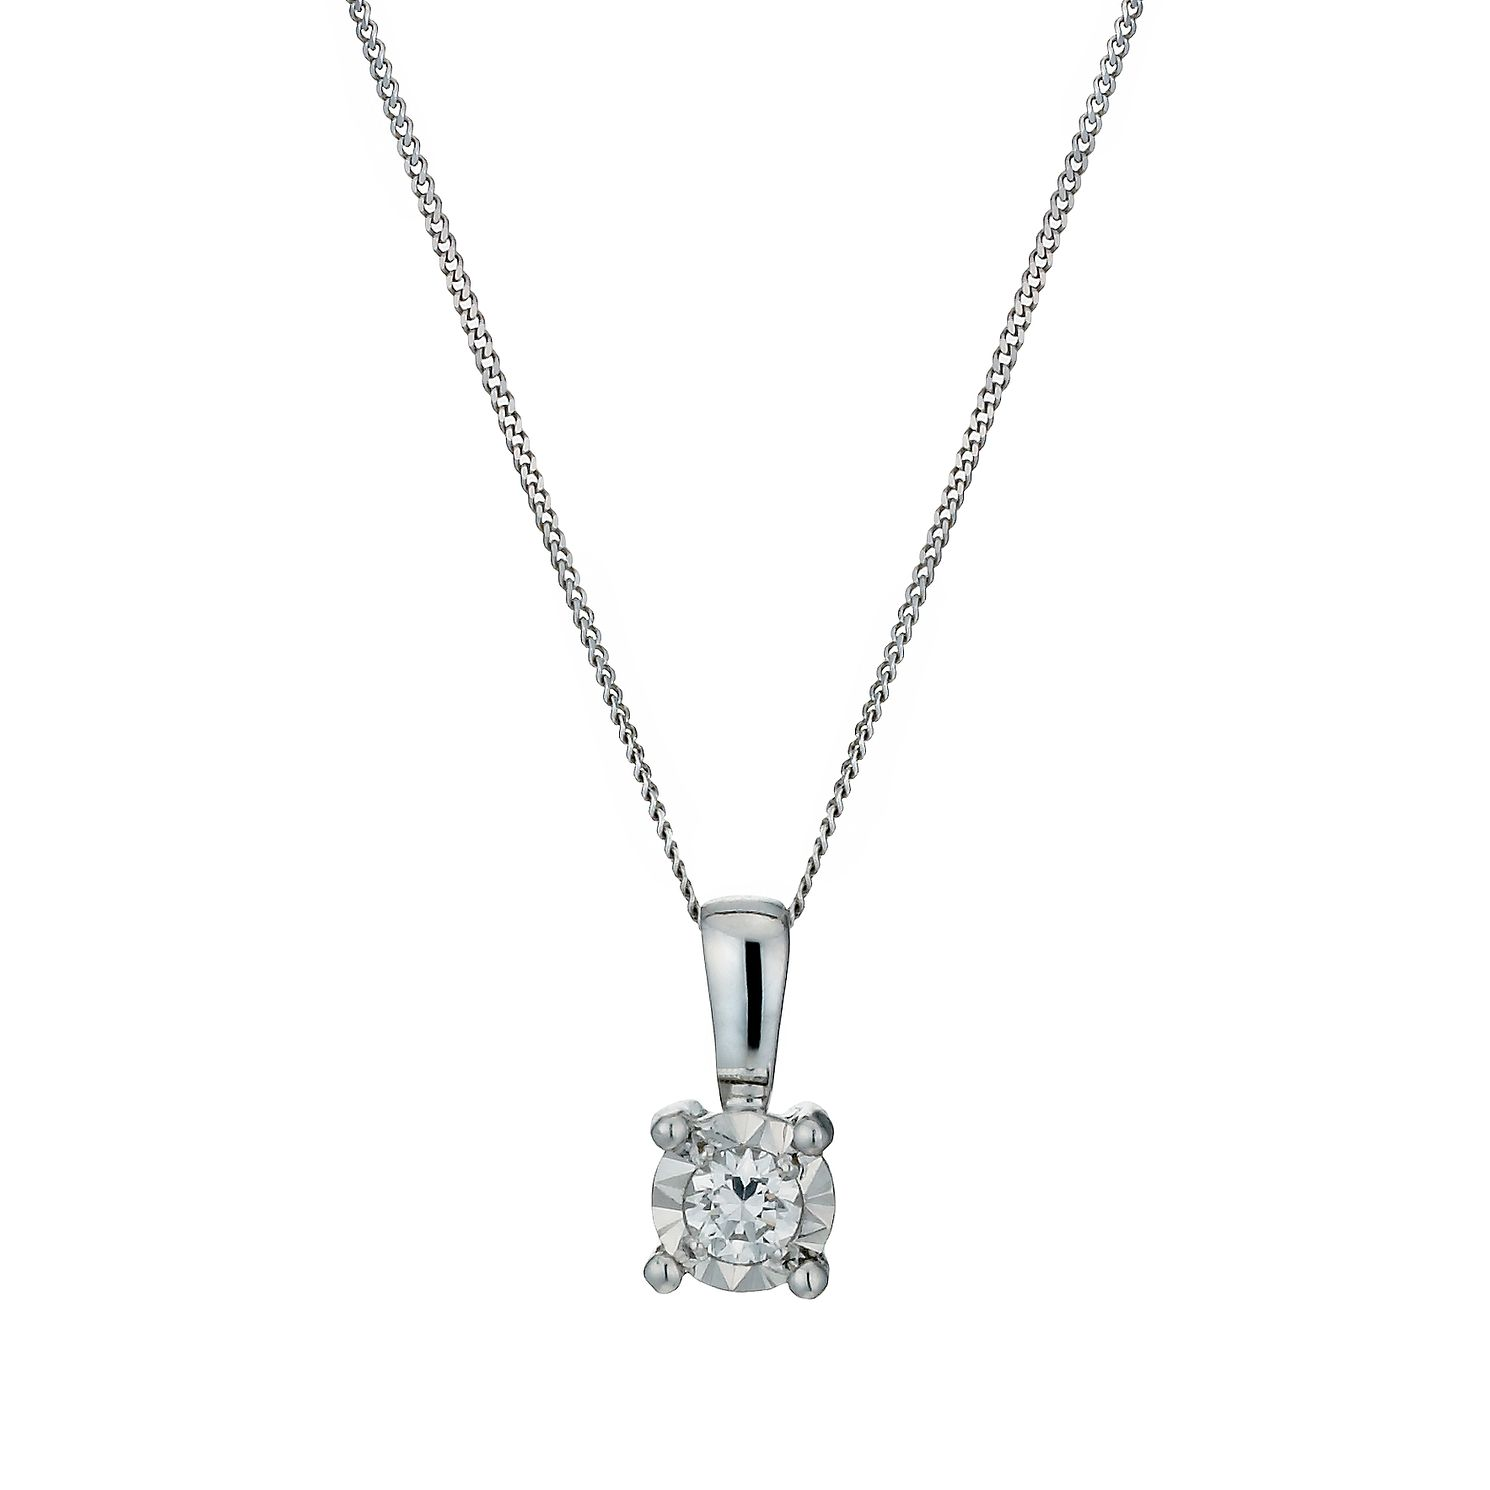 en pendant orogem product solitaire diamond necklace